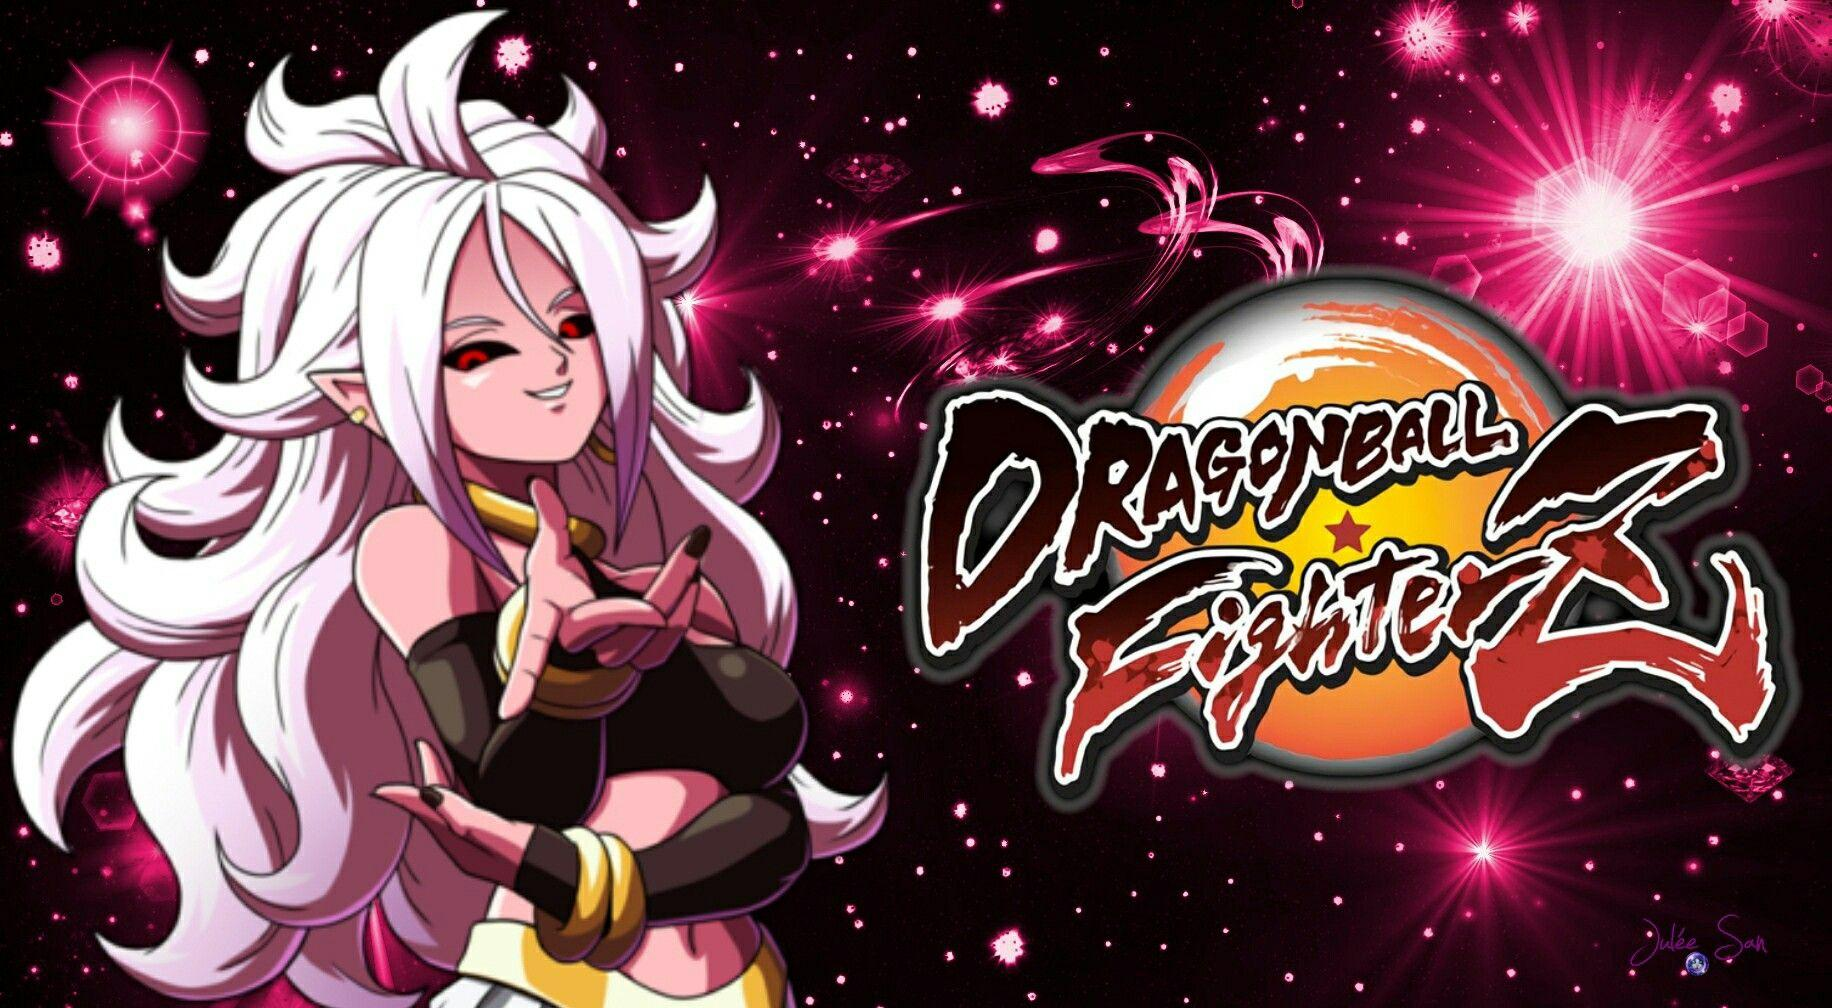 Dragon Ball Z Android 21 Wallpapers - Wallpaper Cave